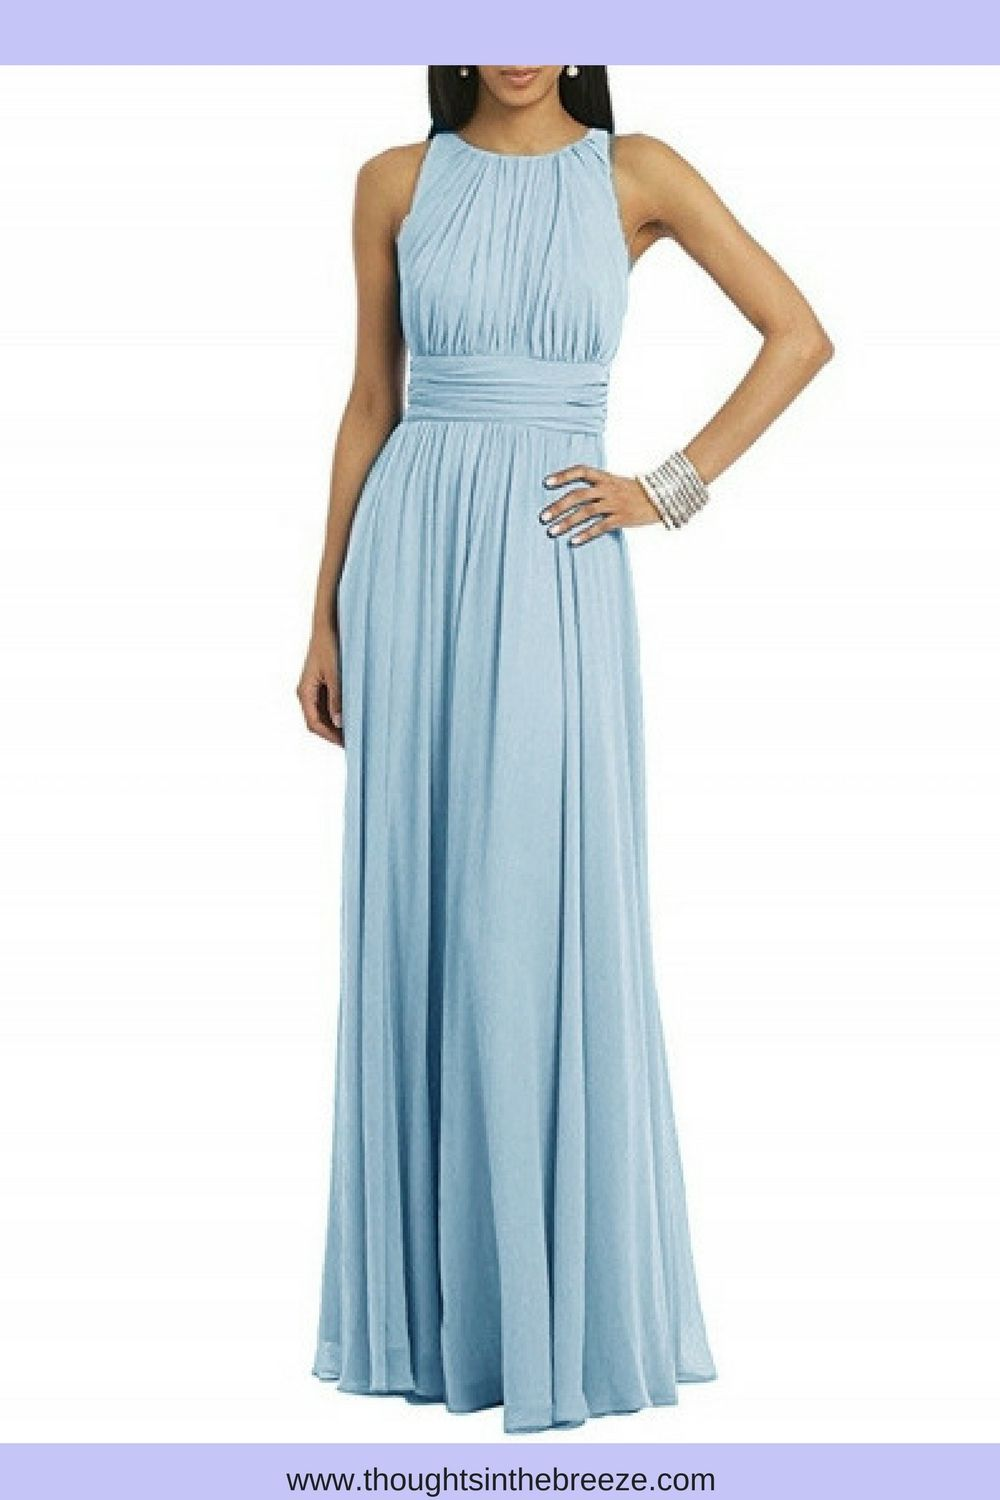 Women\'s Sleeveless Solid Pleated Long Prom Dress. Looking for an ...